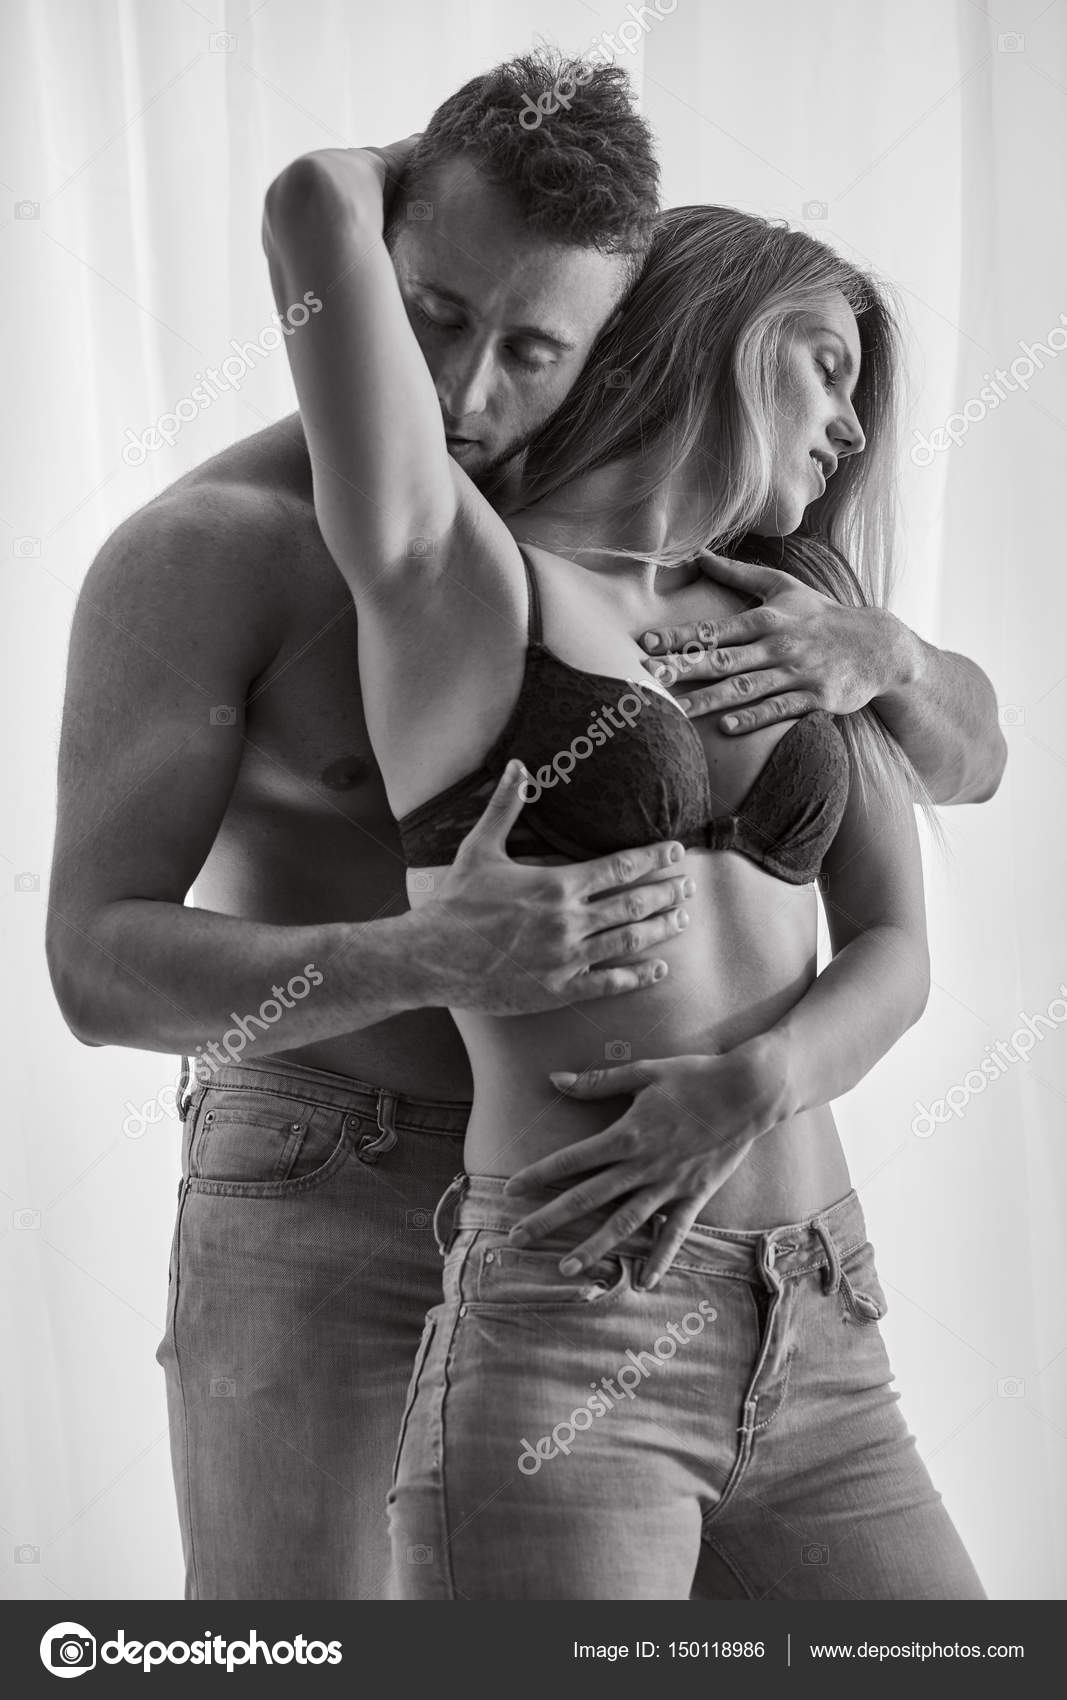 Hi woman do not let your boyfriend squeeze your breasts steemit